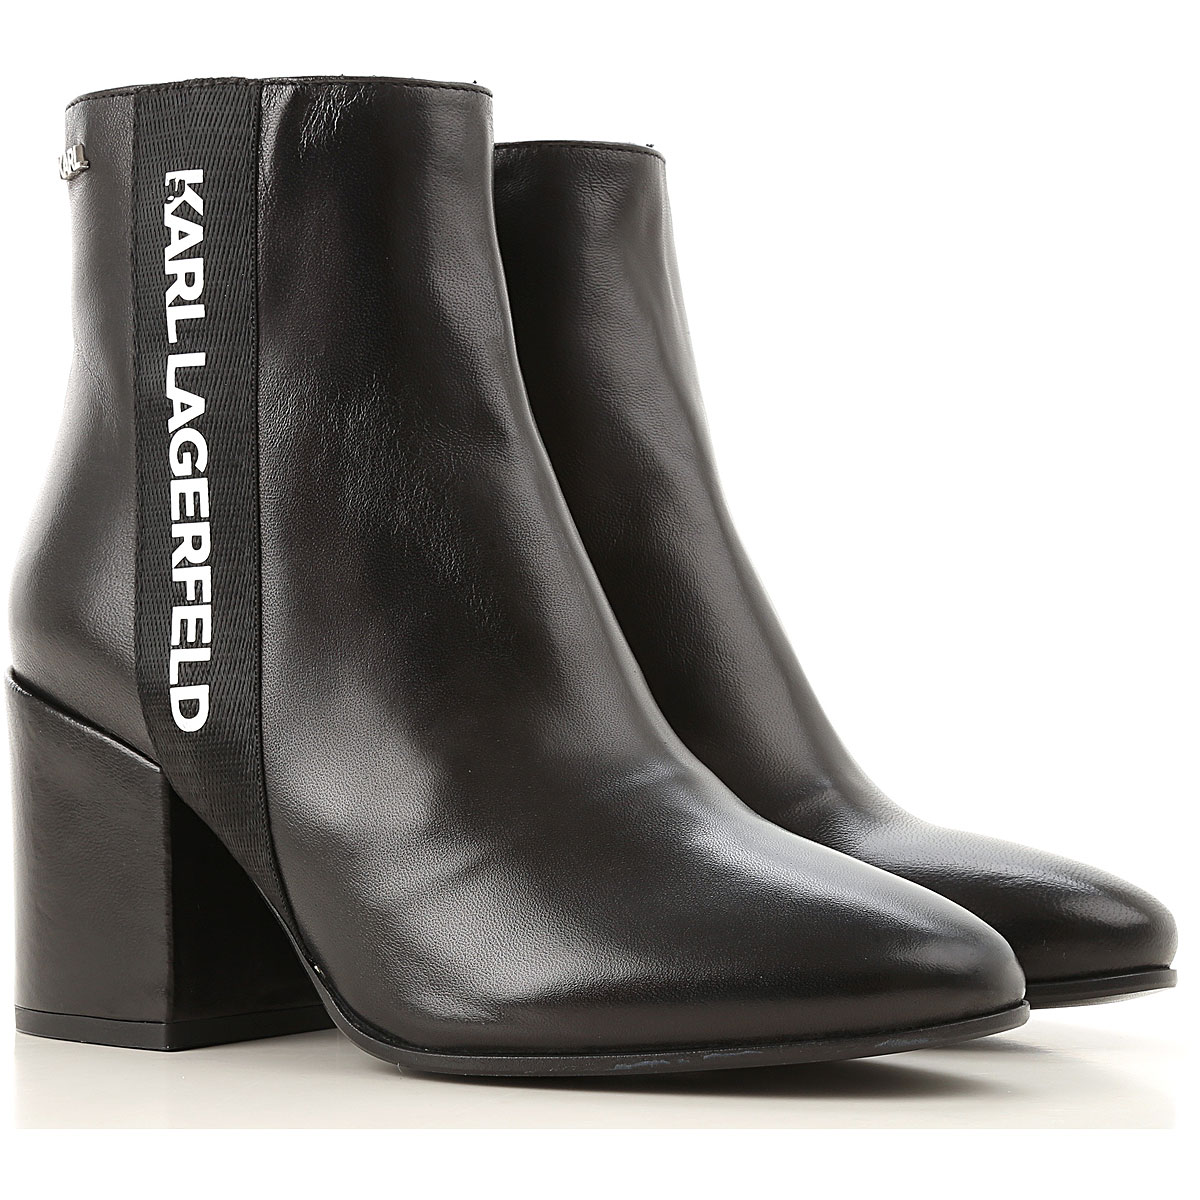 Karl Lagerfeld Boots for Women, Booties On Sale, Black, Leather, 2019, UK 4 - EU 37 - US 7 UK 5 - EU 38 - US 8 UK 8 - EU 41 - US 11 UK 6 - EU 39 UK 7